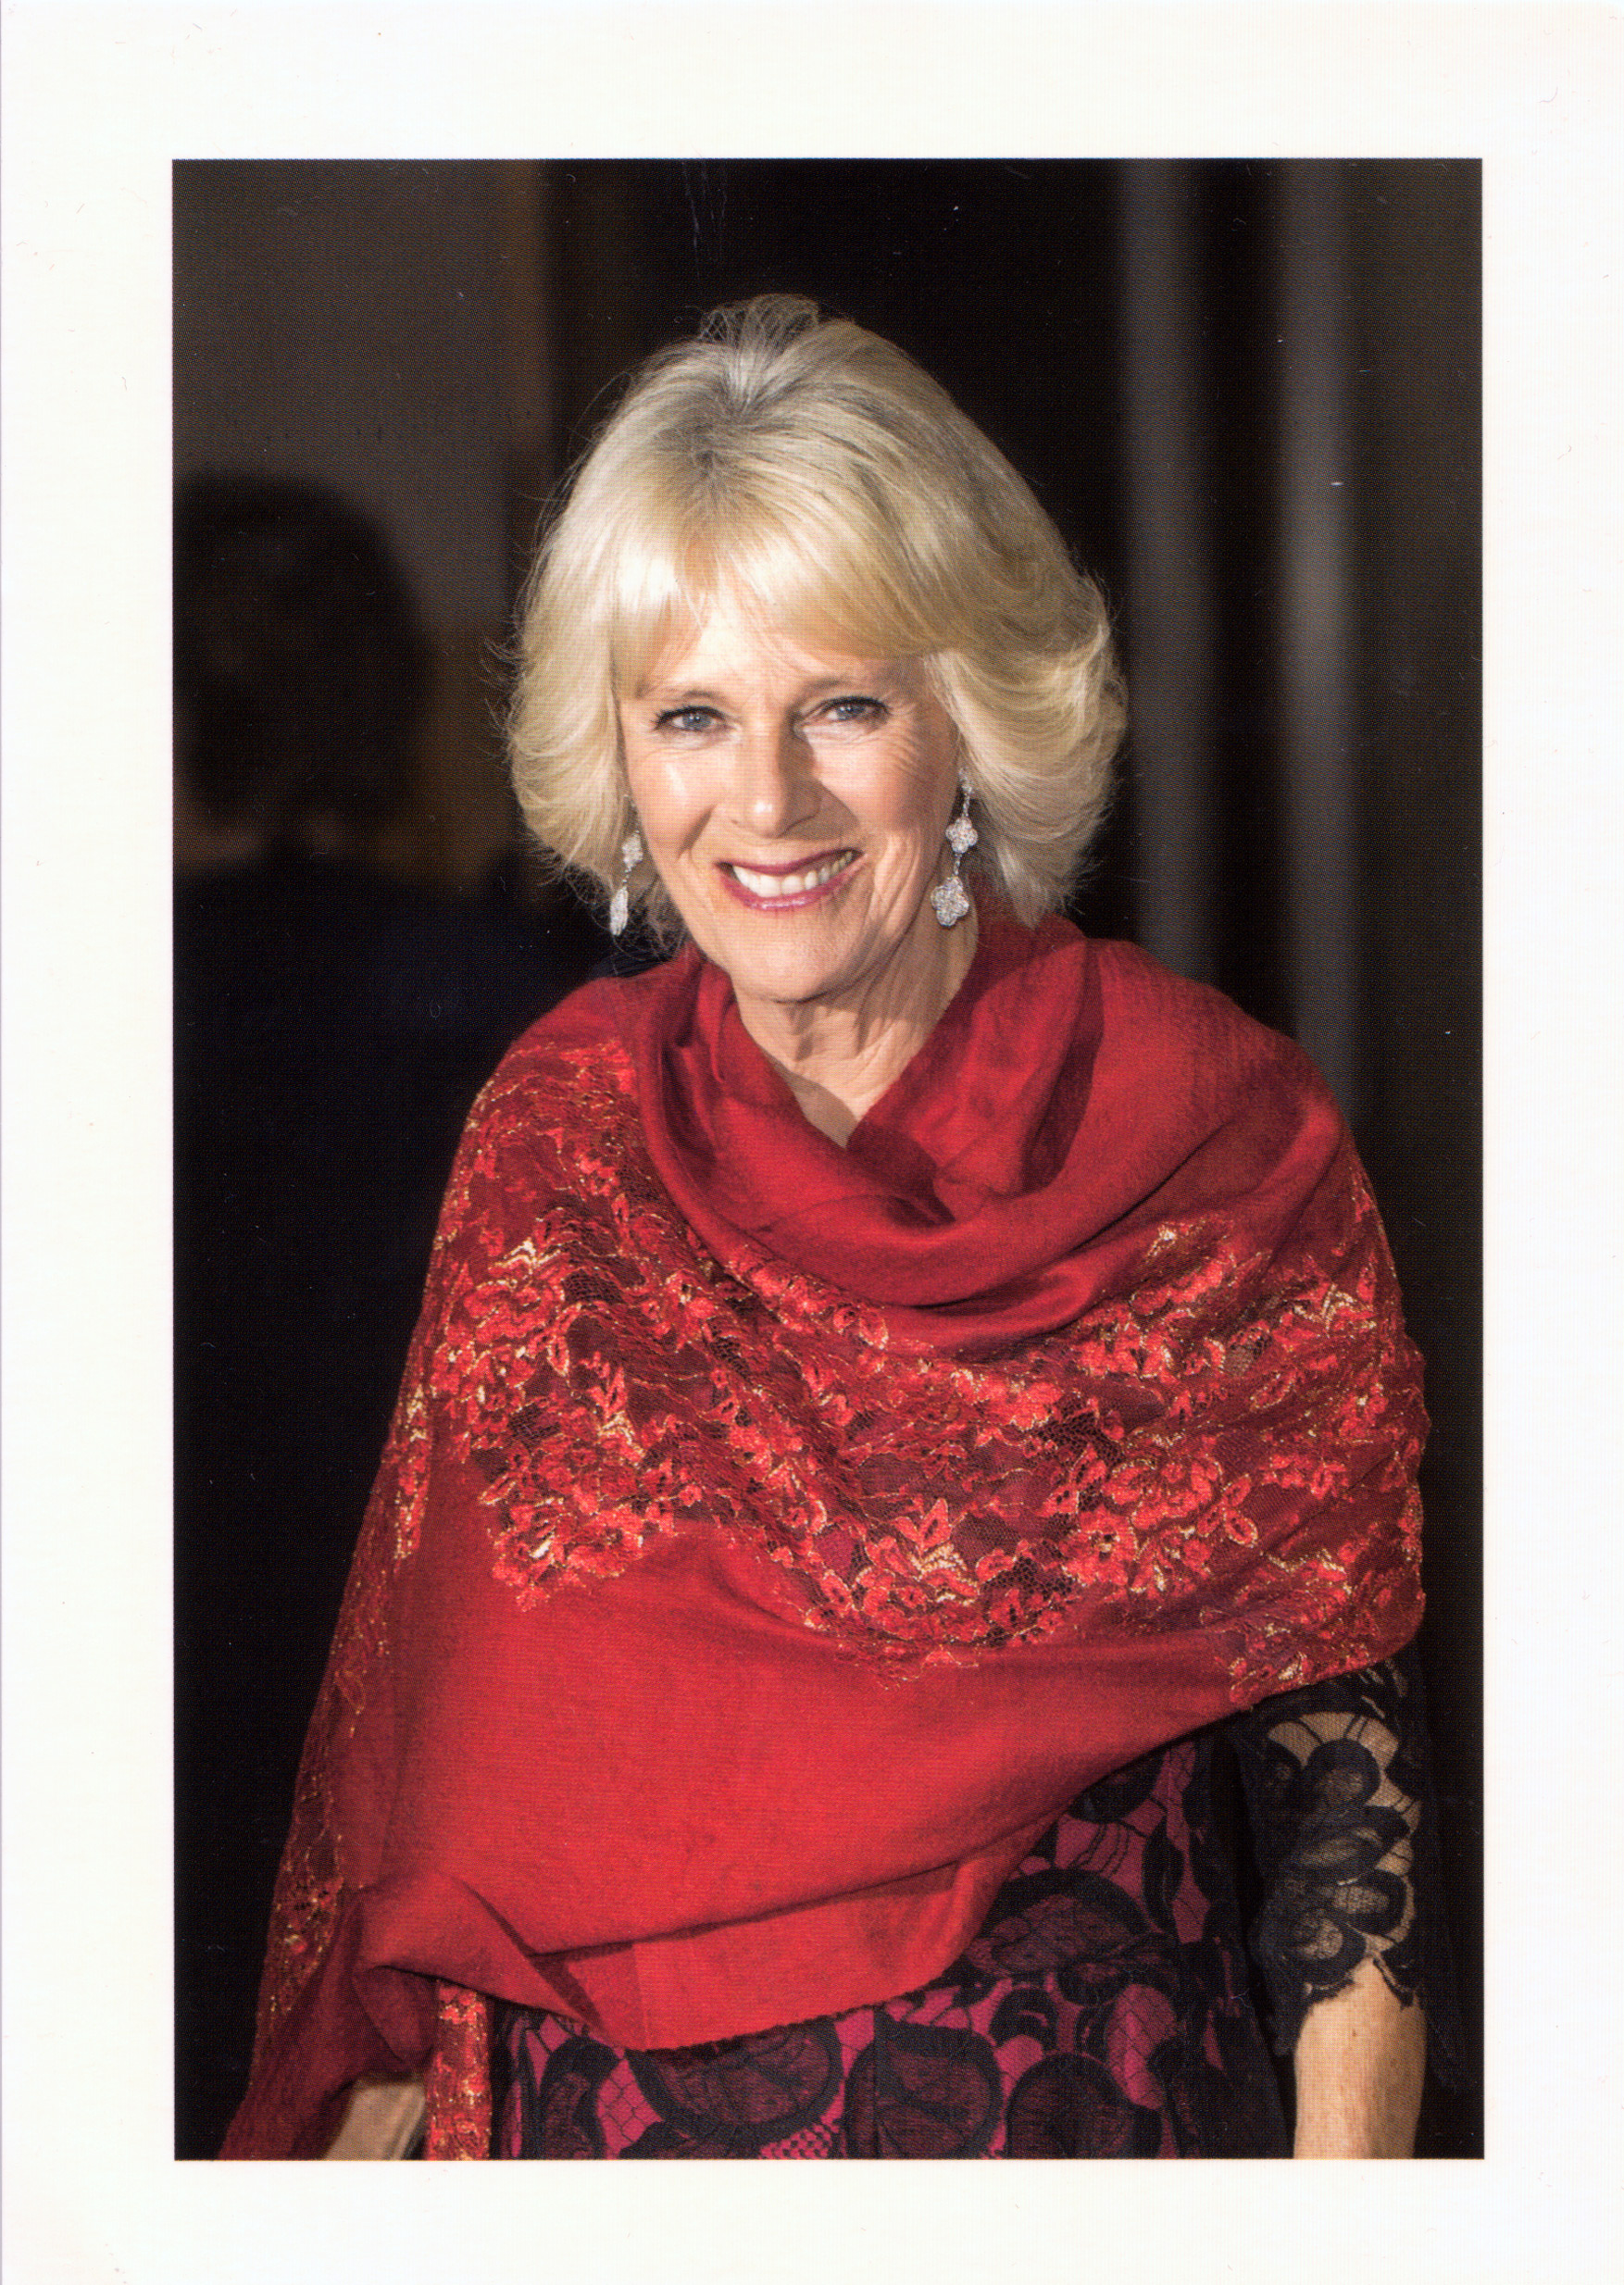 Camilla Prince Charles I Got Another Handwritten Card From Camilla Duchess Of